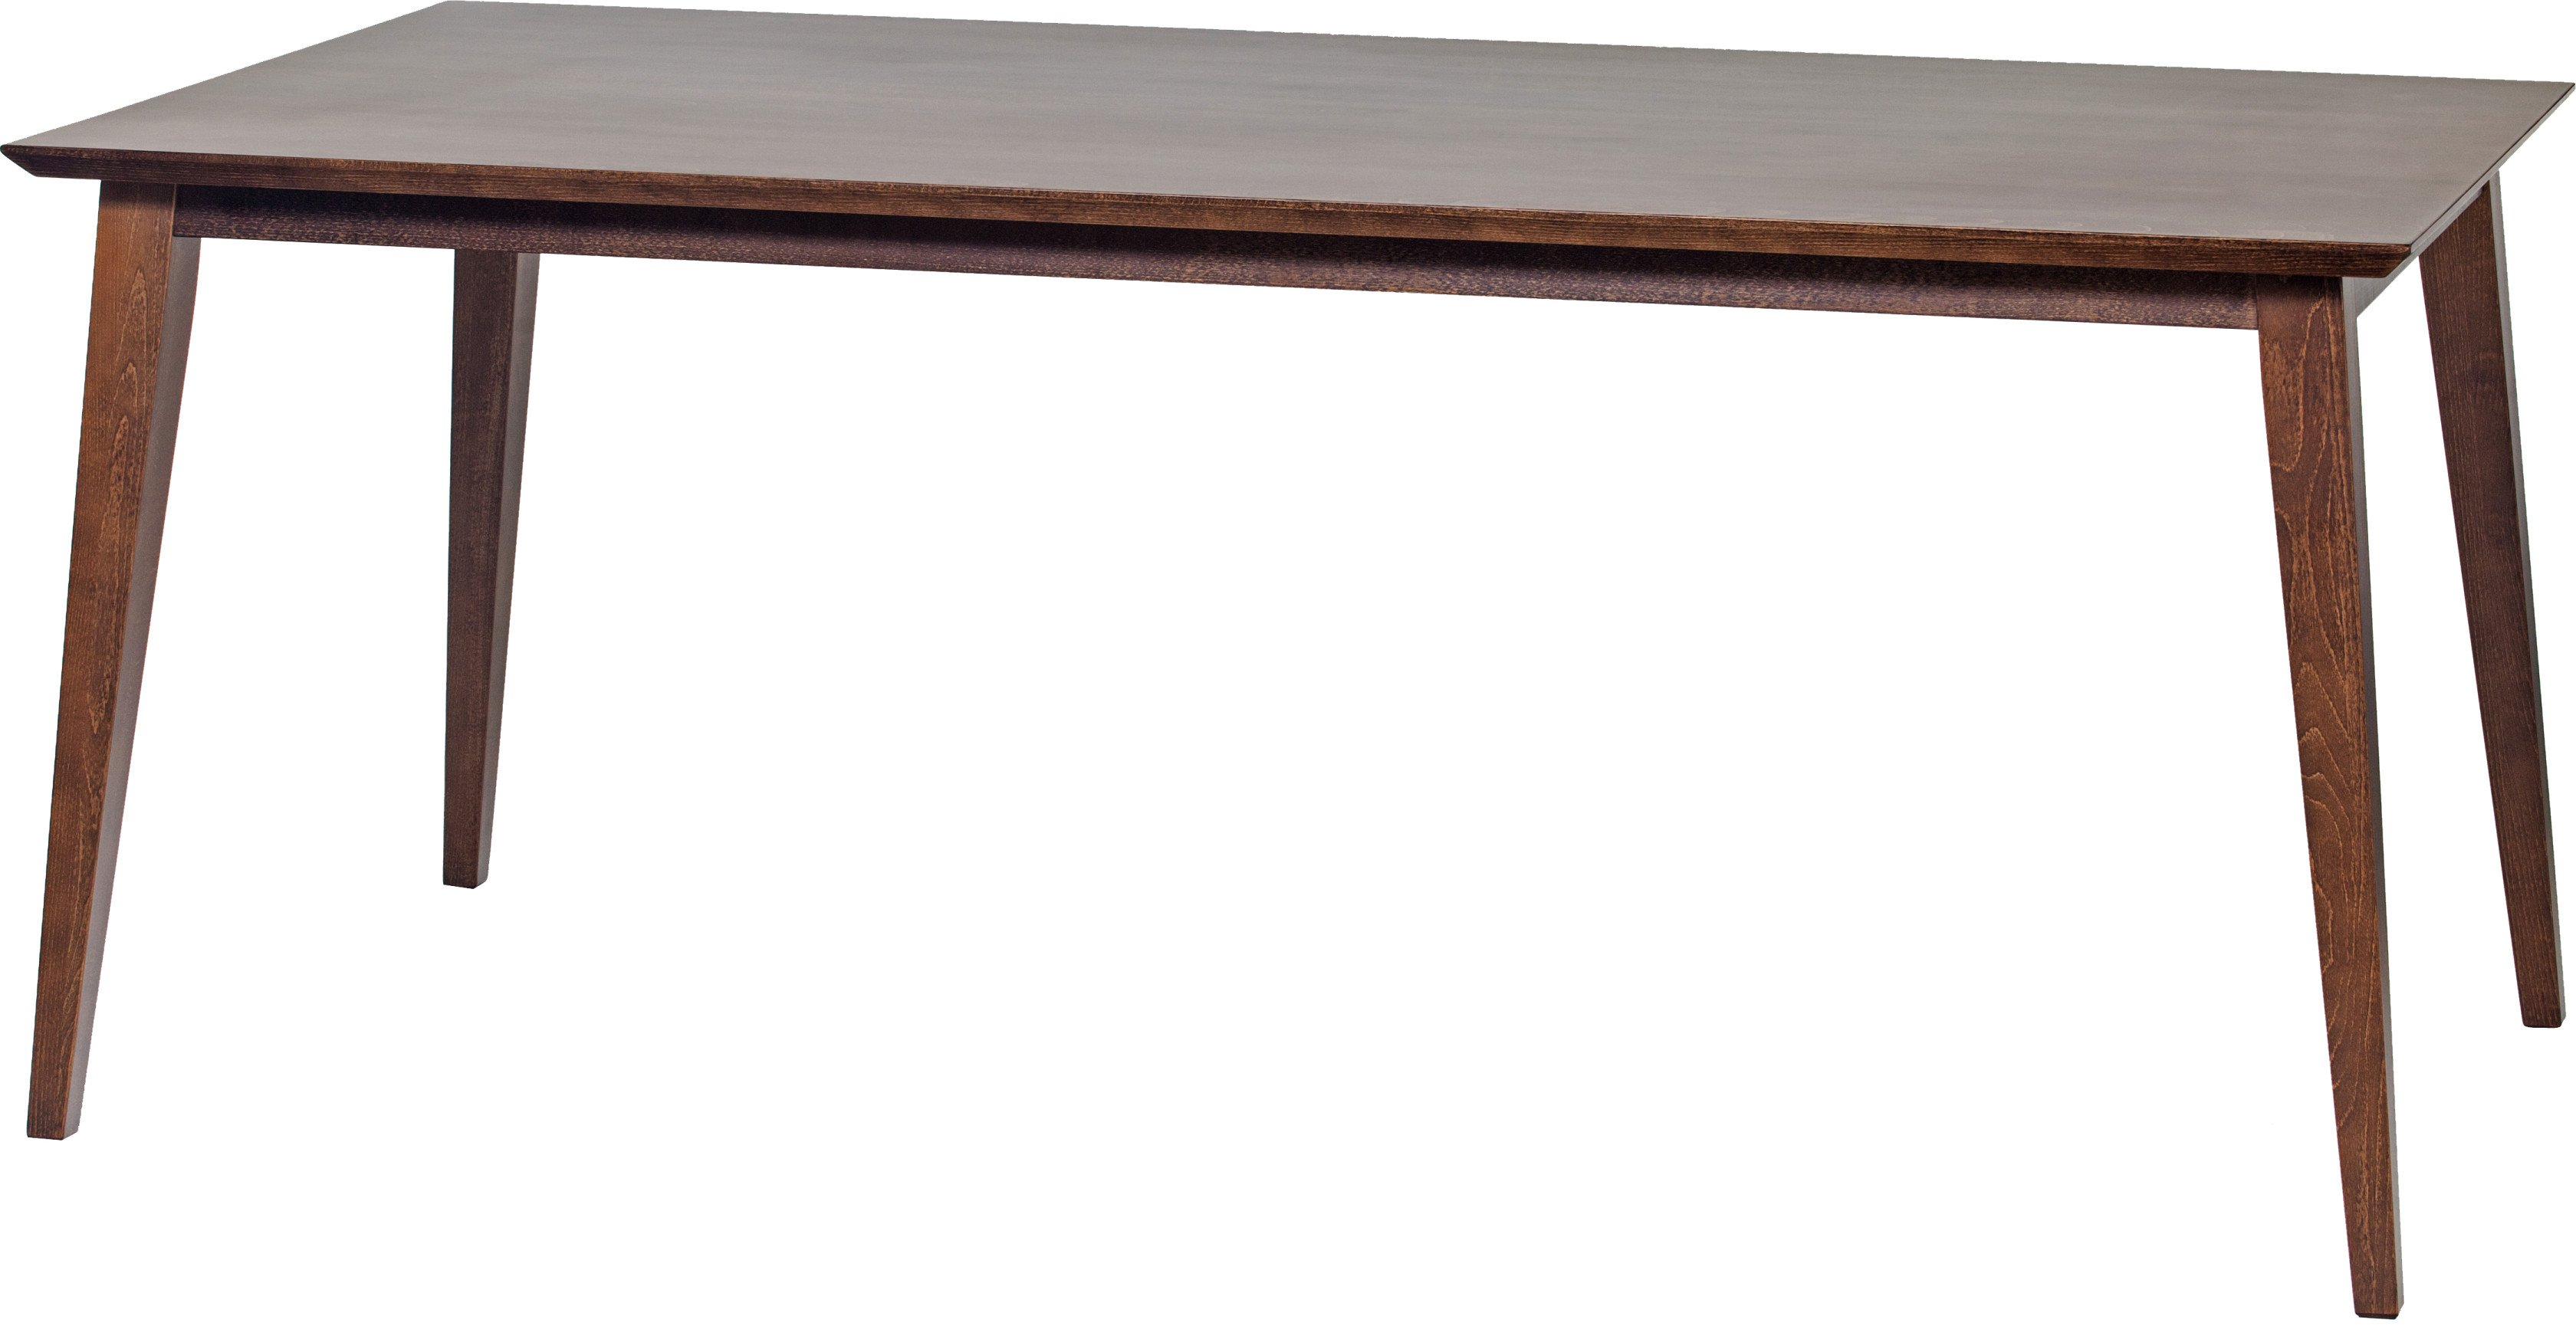 Jutland Extendable Table 200x100 American Walnut by M. K. Johansen for TON